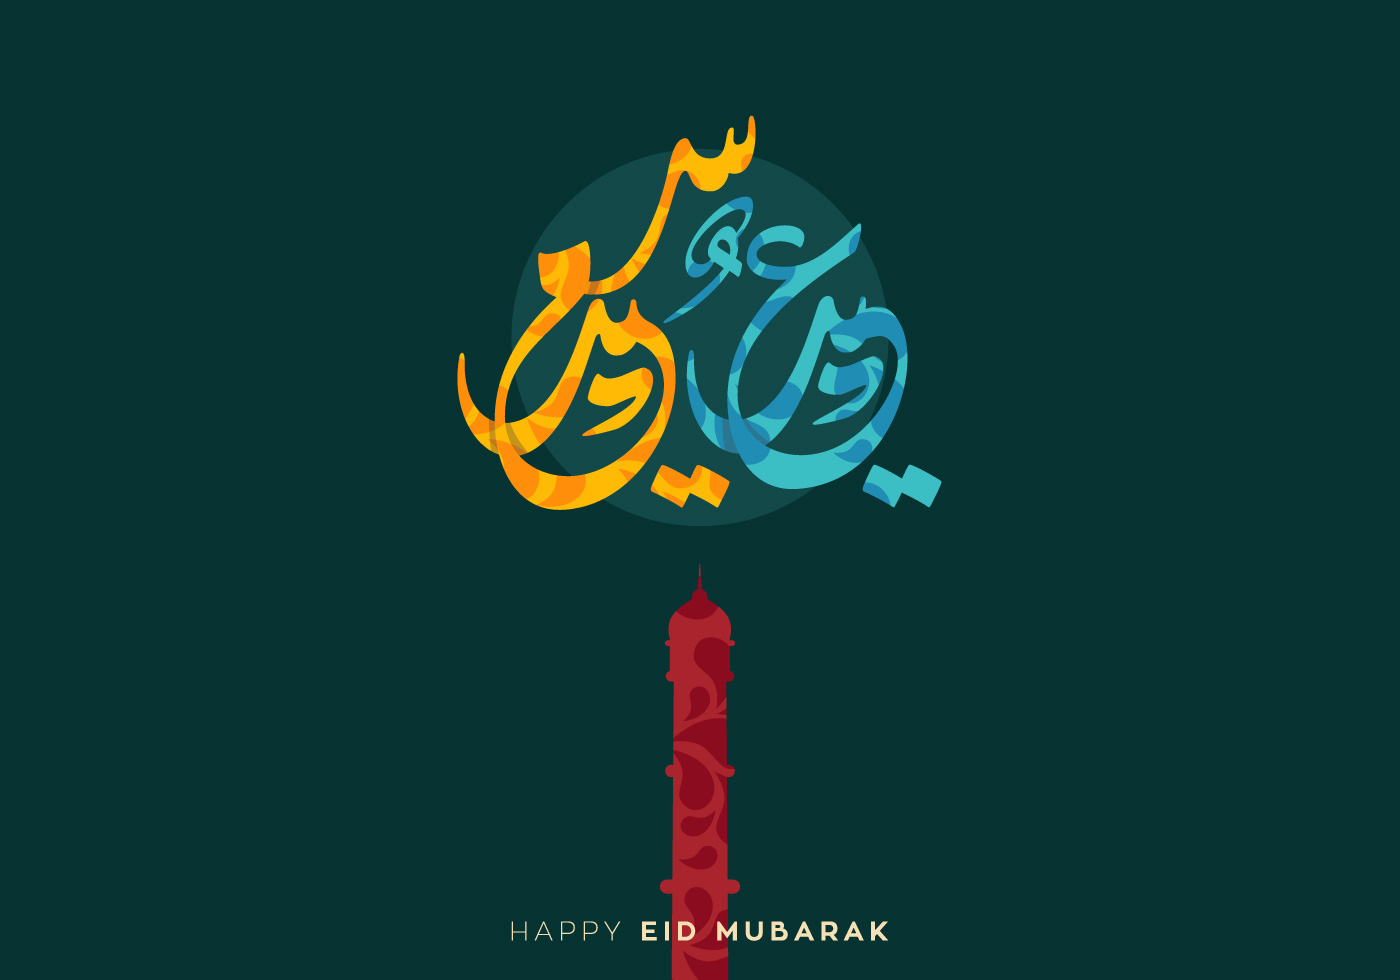 eid al fitr There are two eids celebrated in islam and both follow major acts of worship the first is eid al-fitr which follows ramadan and the second is eid al-adha which.